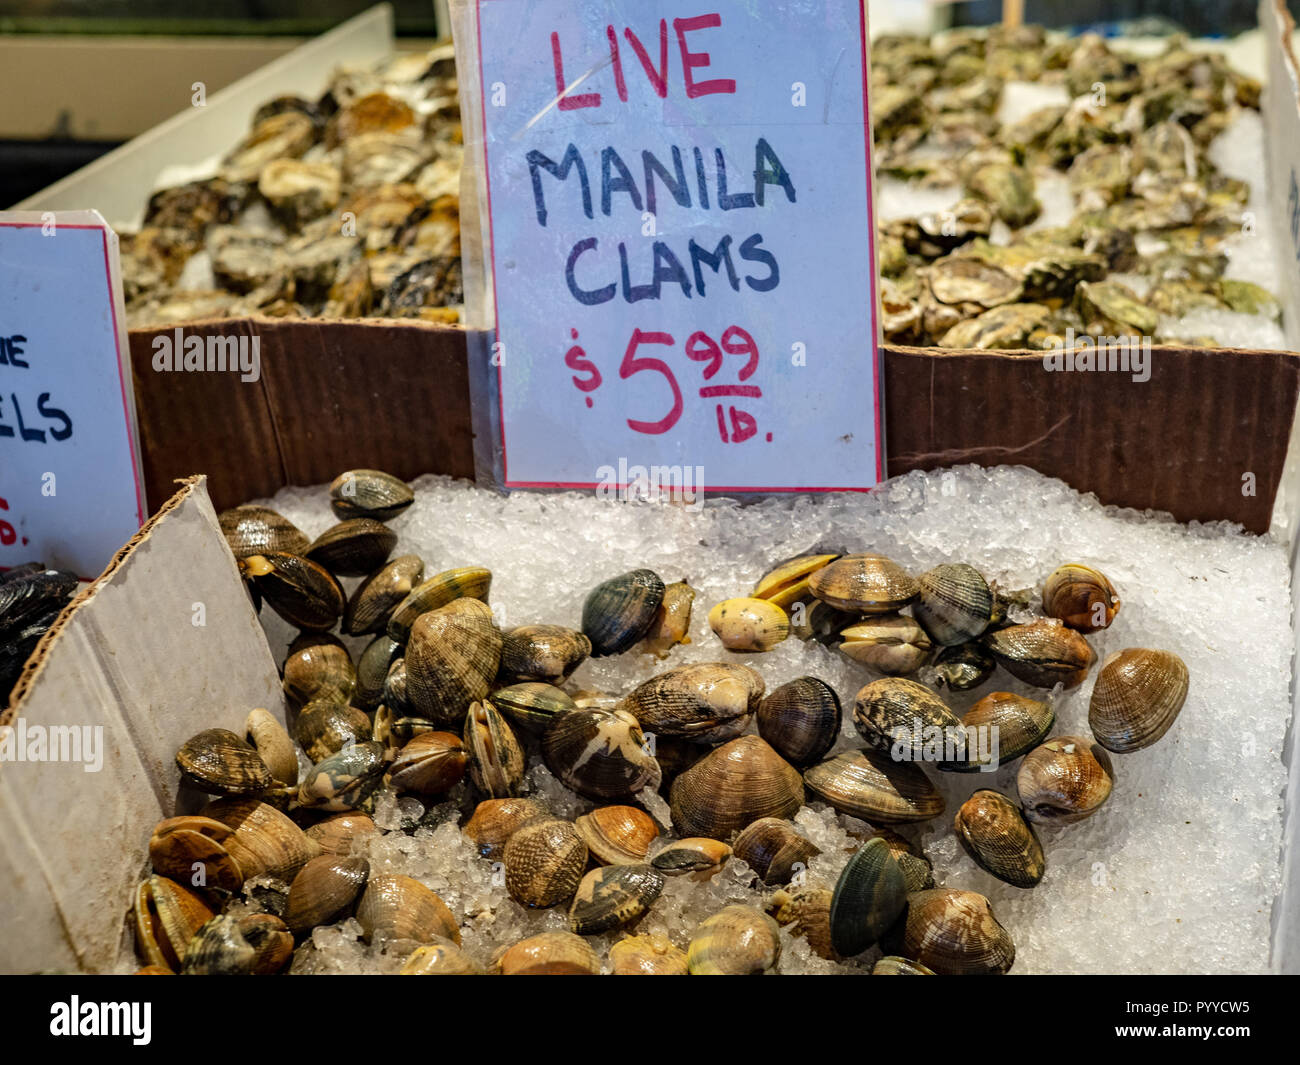 Live manila clams in ice for sale for 5.99 USD in fishermans market - Stock Image